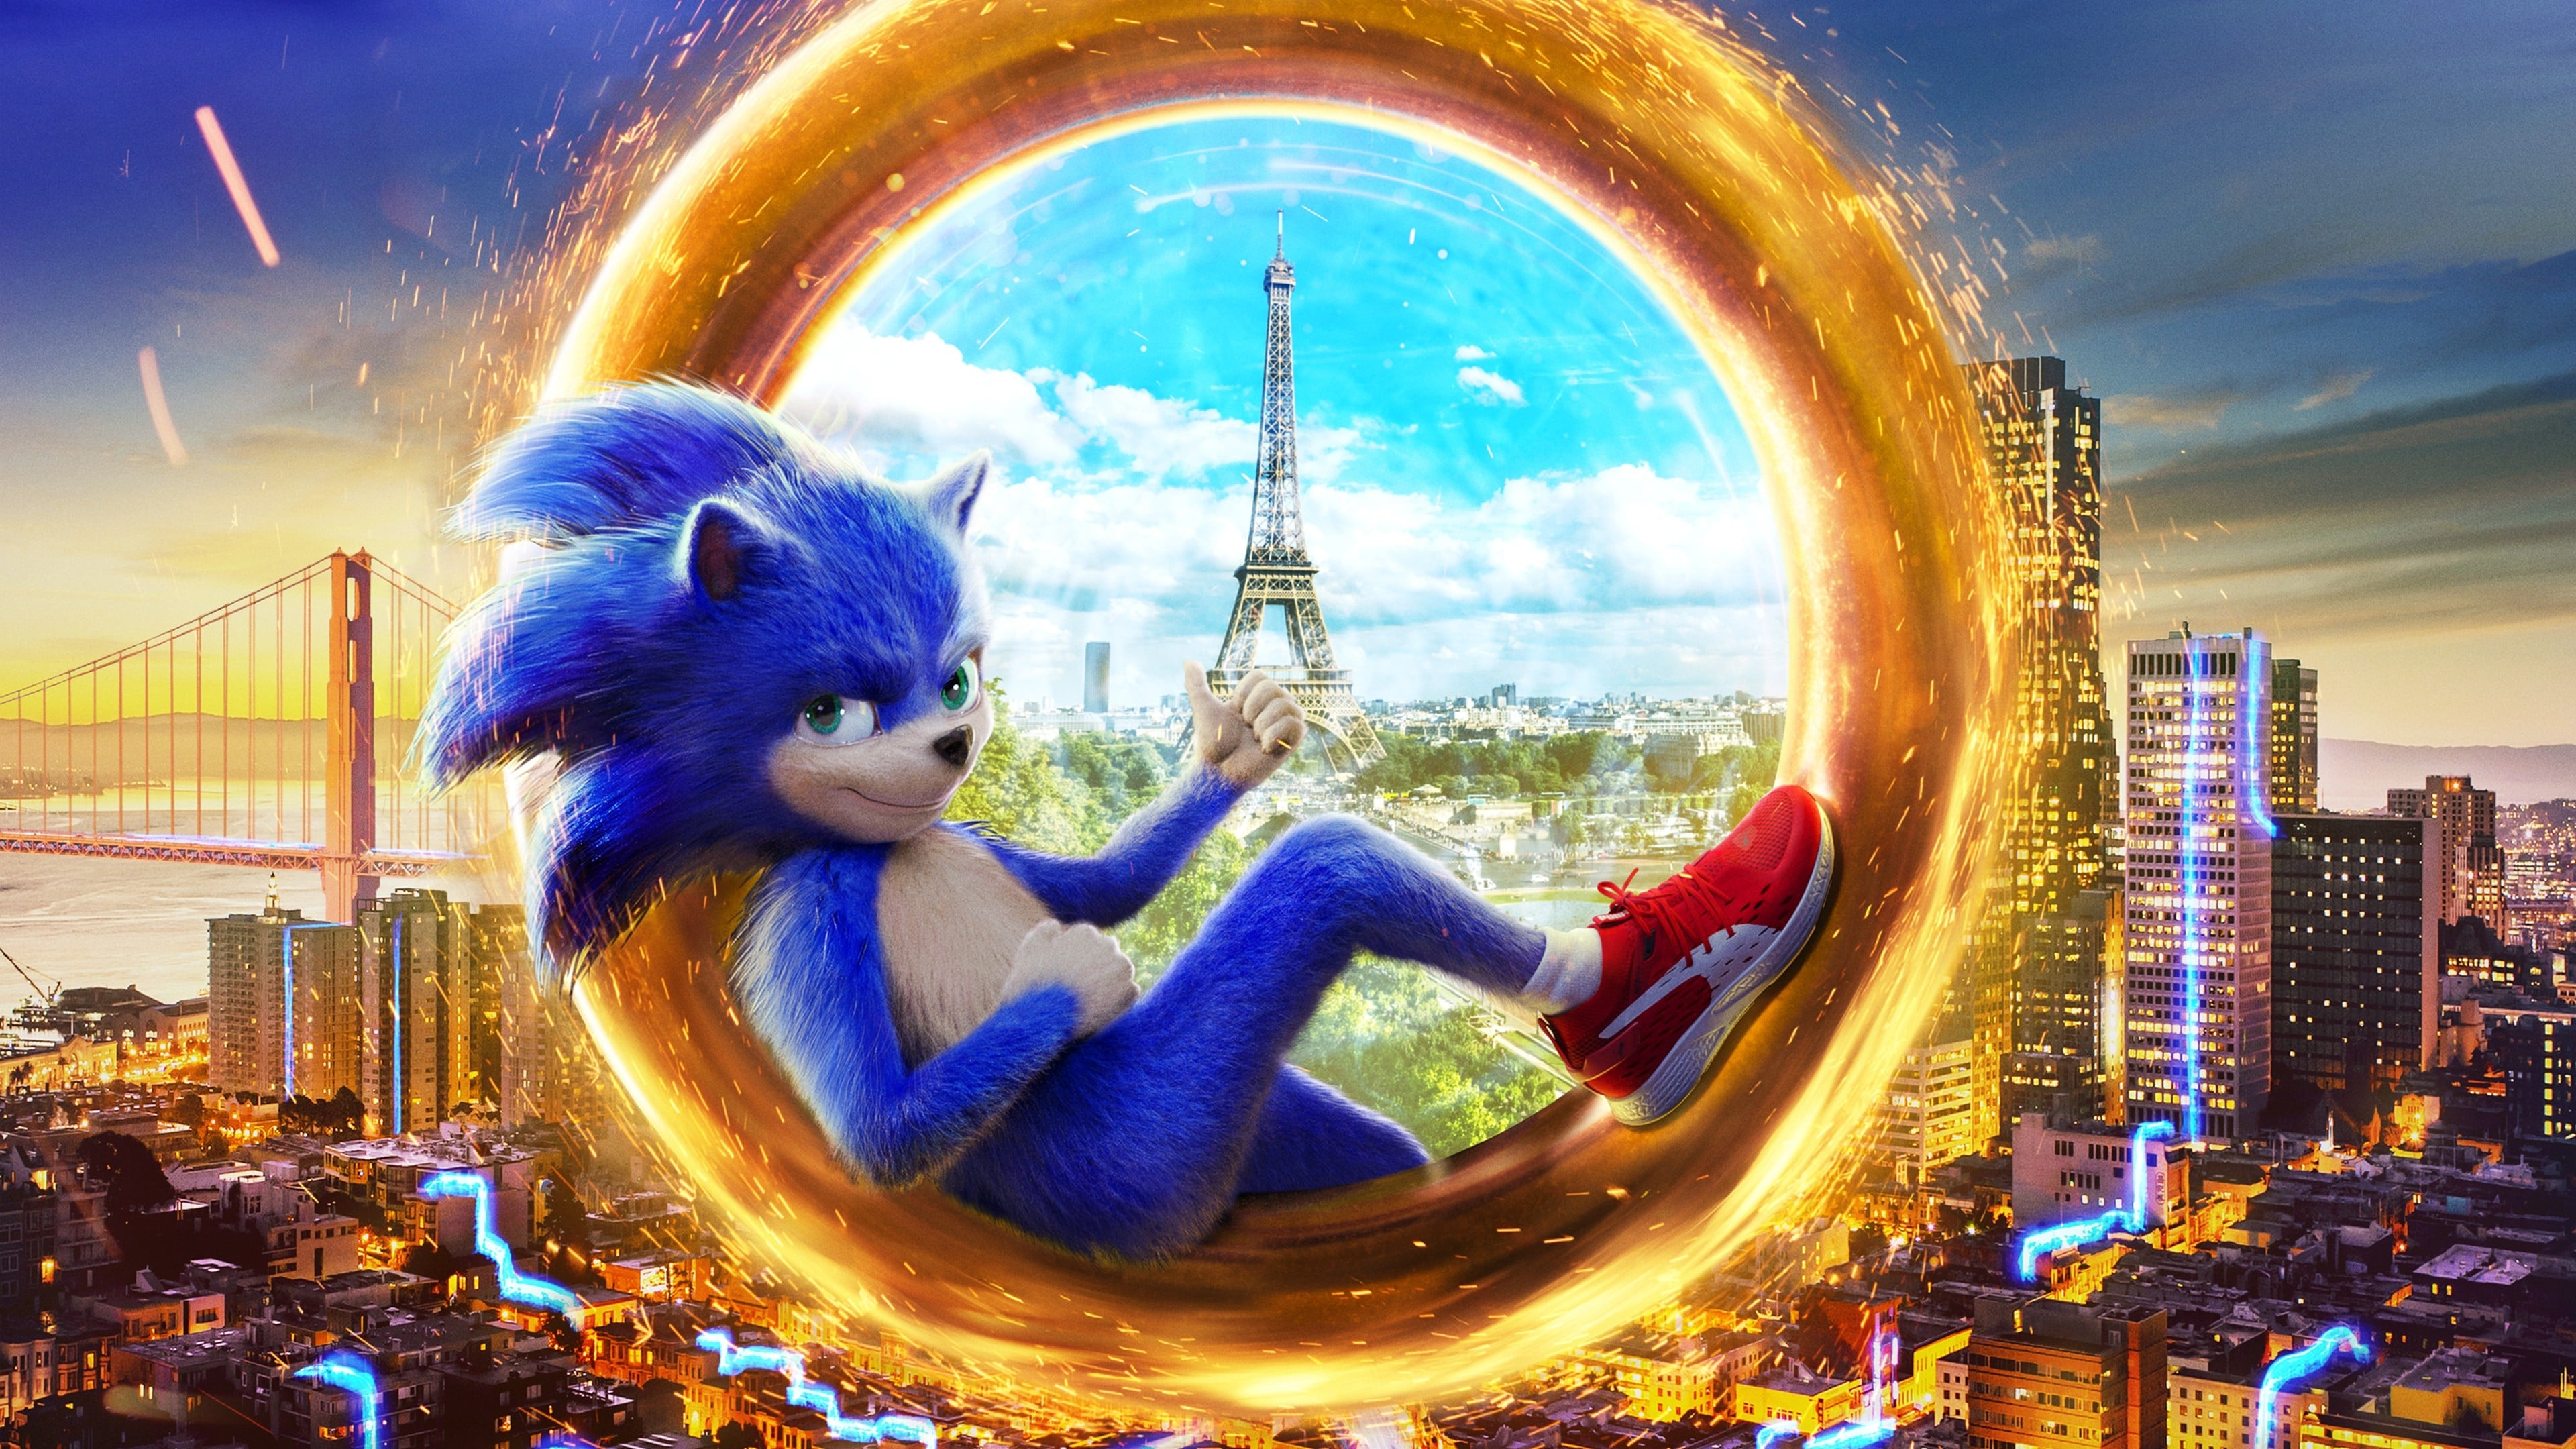 Sonic the Hedgehog — July 2020